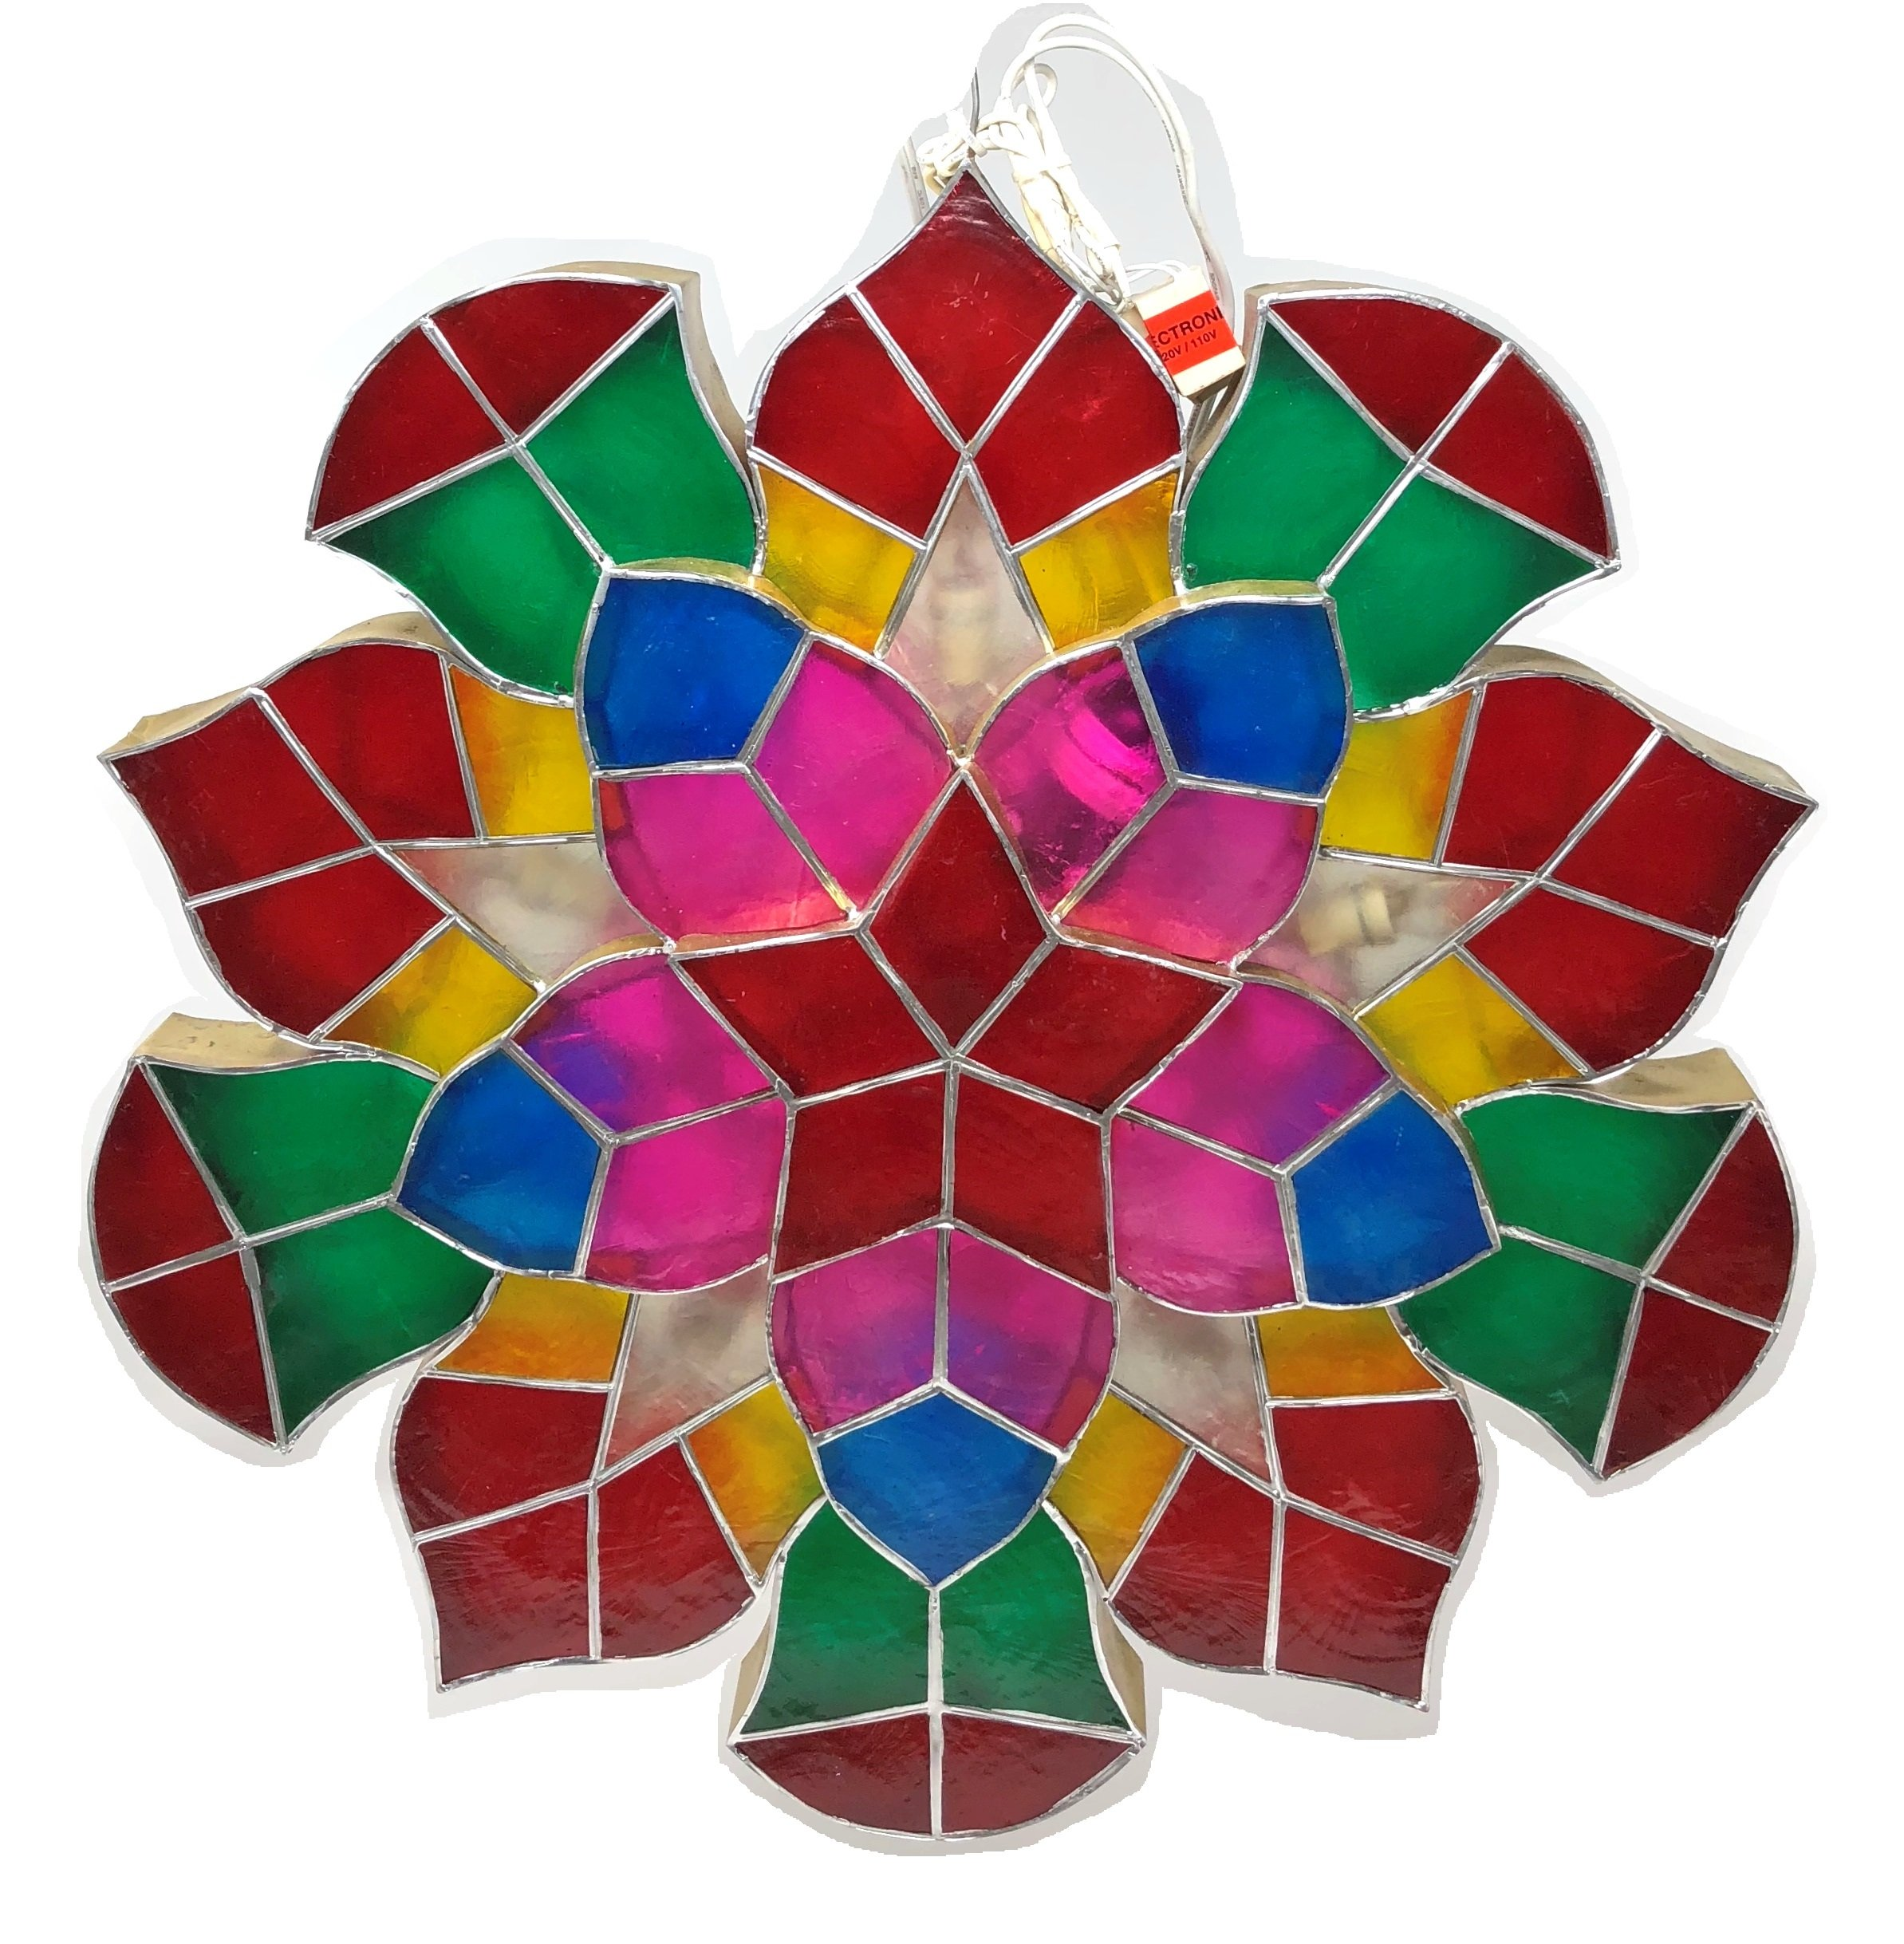 Gift Ko Handmade Parol Traditional Philippine Christmas Lantern, Sampabell, 18 inch, Multicoloured by Gift Ko